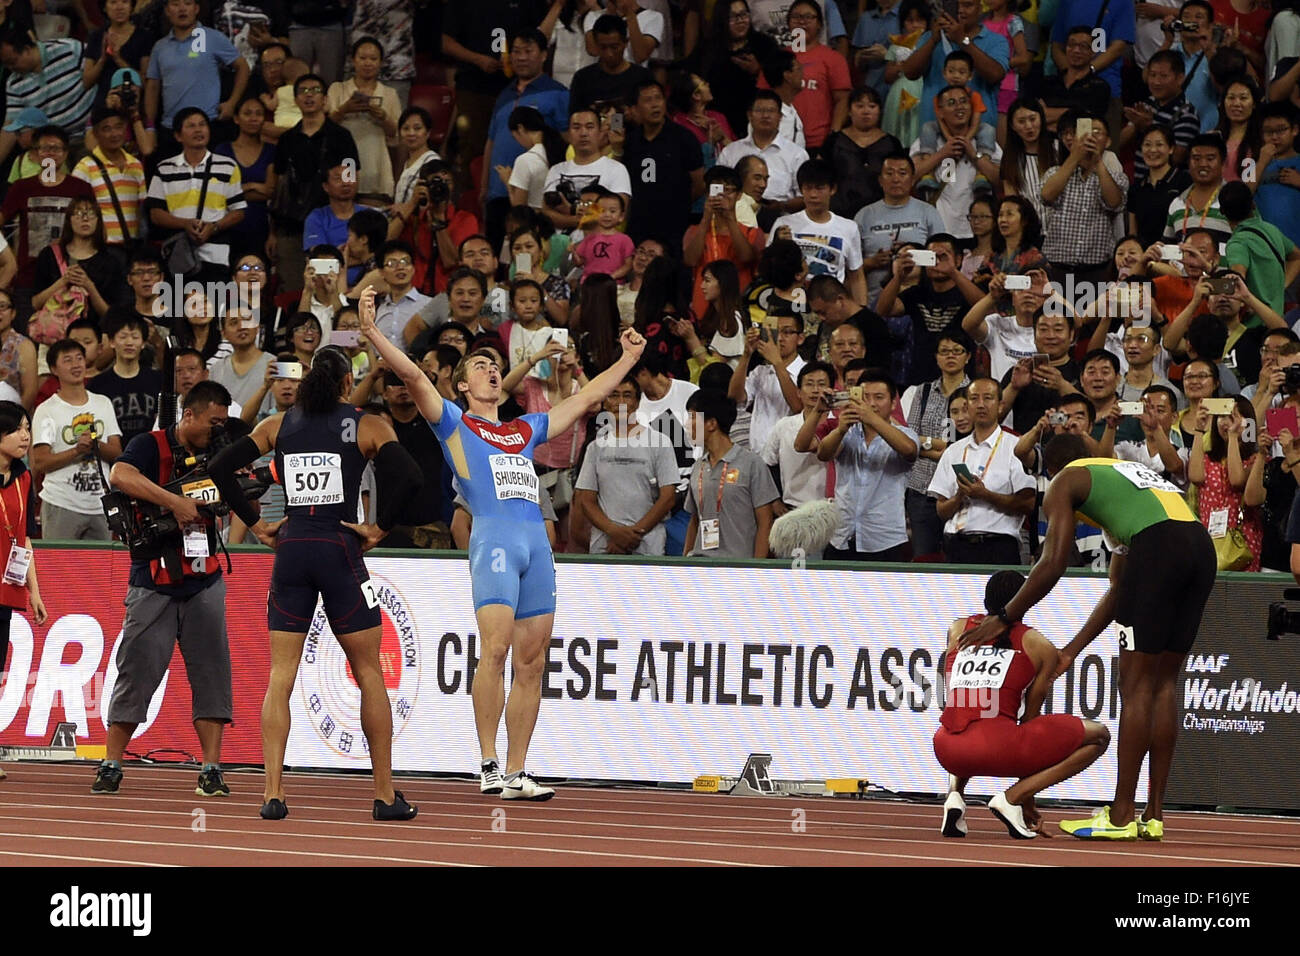 Beijing, China. 28th Aug, 2015. Sergey Shubenkov (3rd R) of Russia celebrates as well as Aries Merritt (2nd R) of - Stock Image